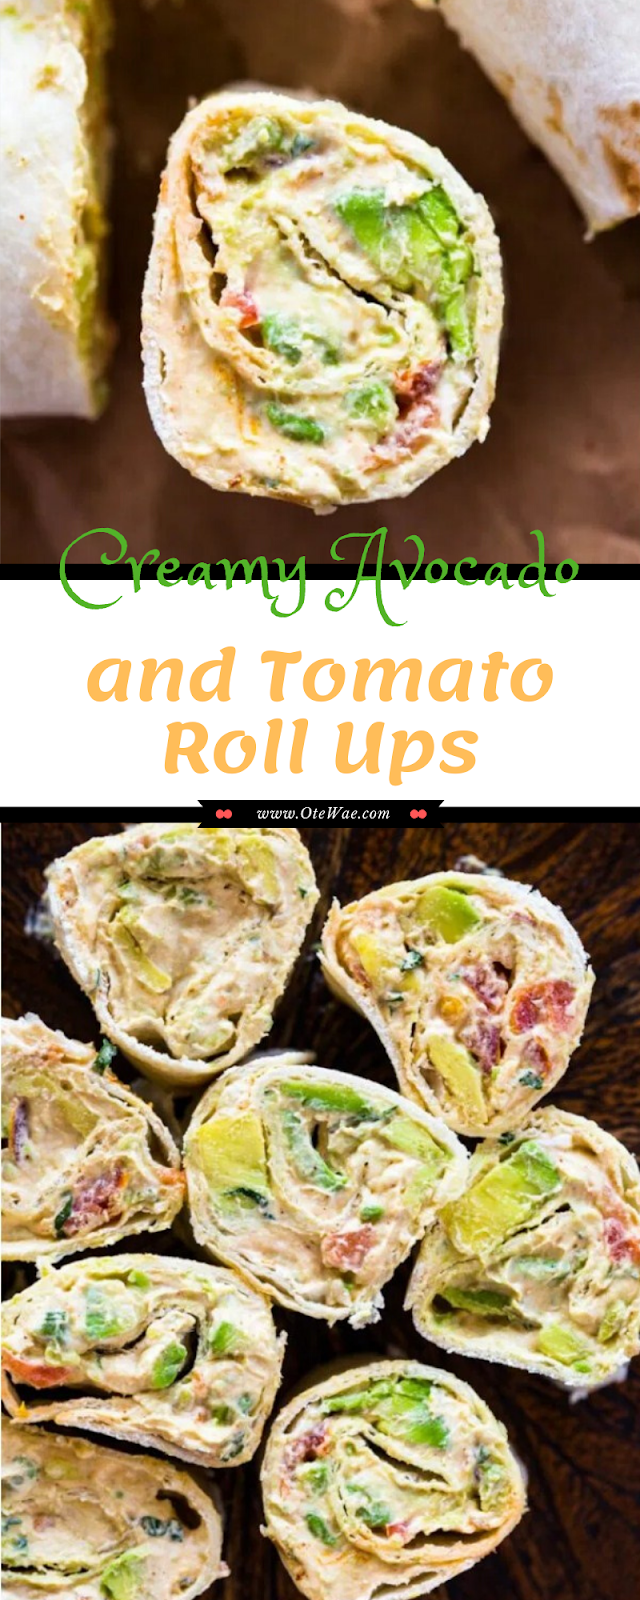 Creamy Avocado and Tomato Roll Ups